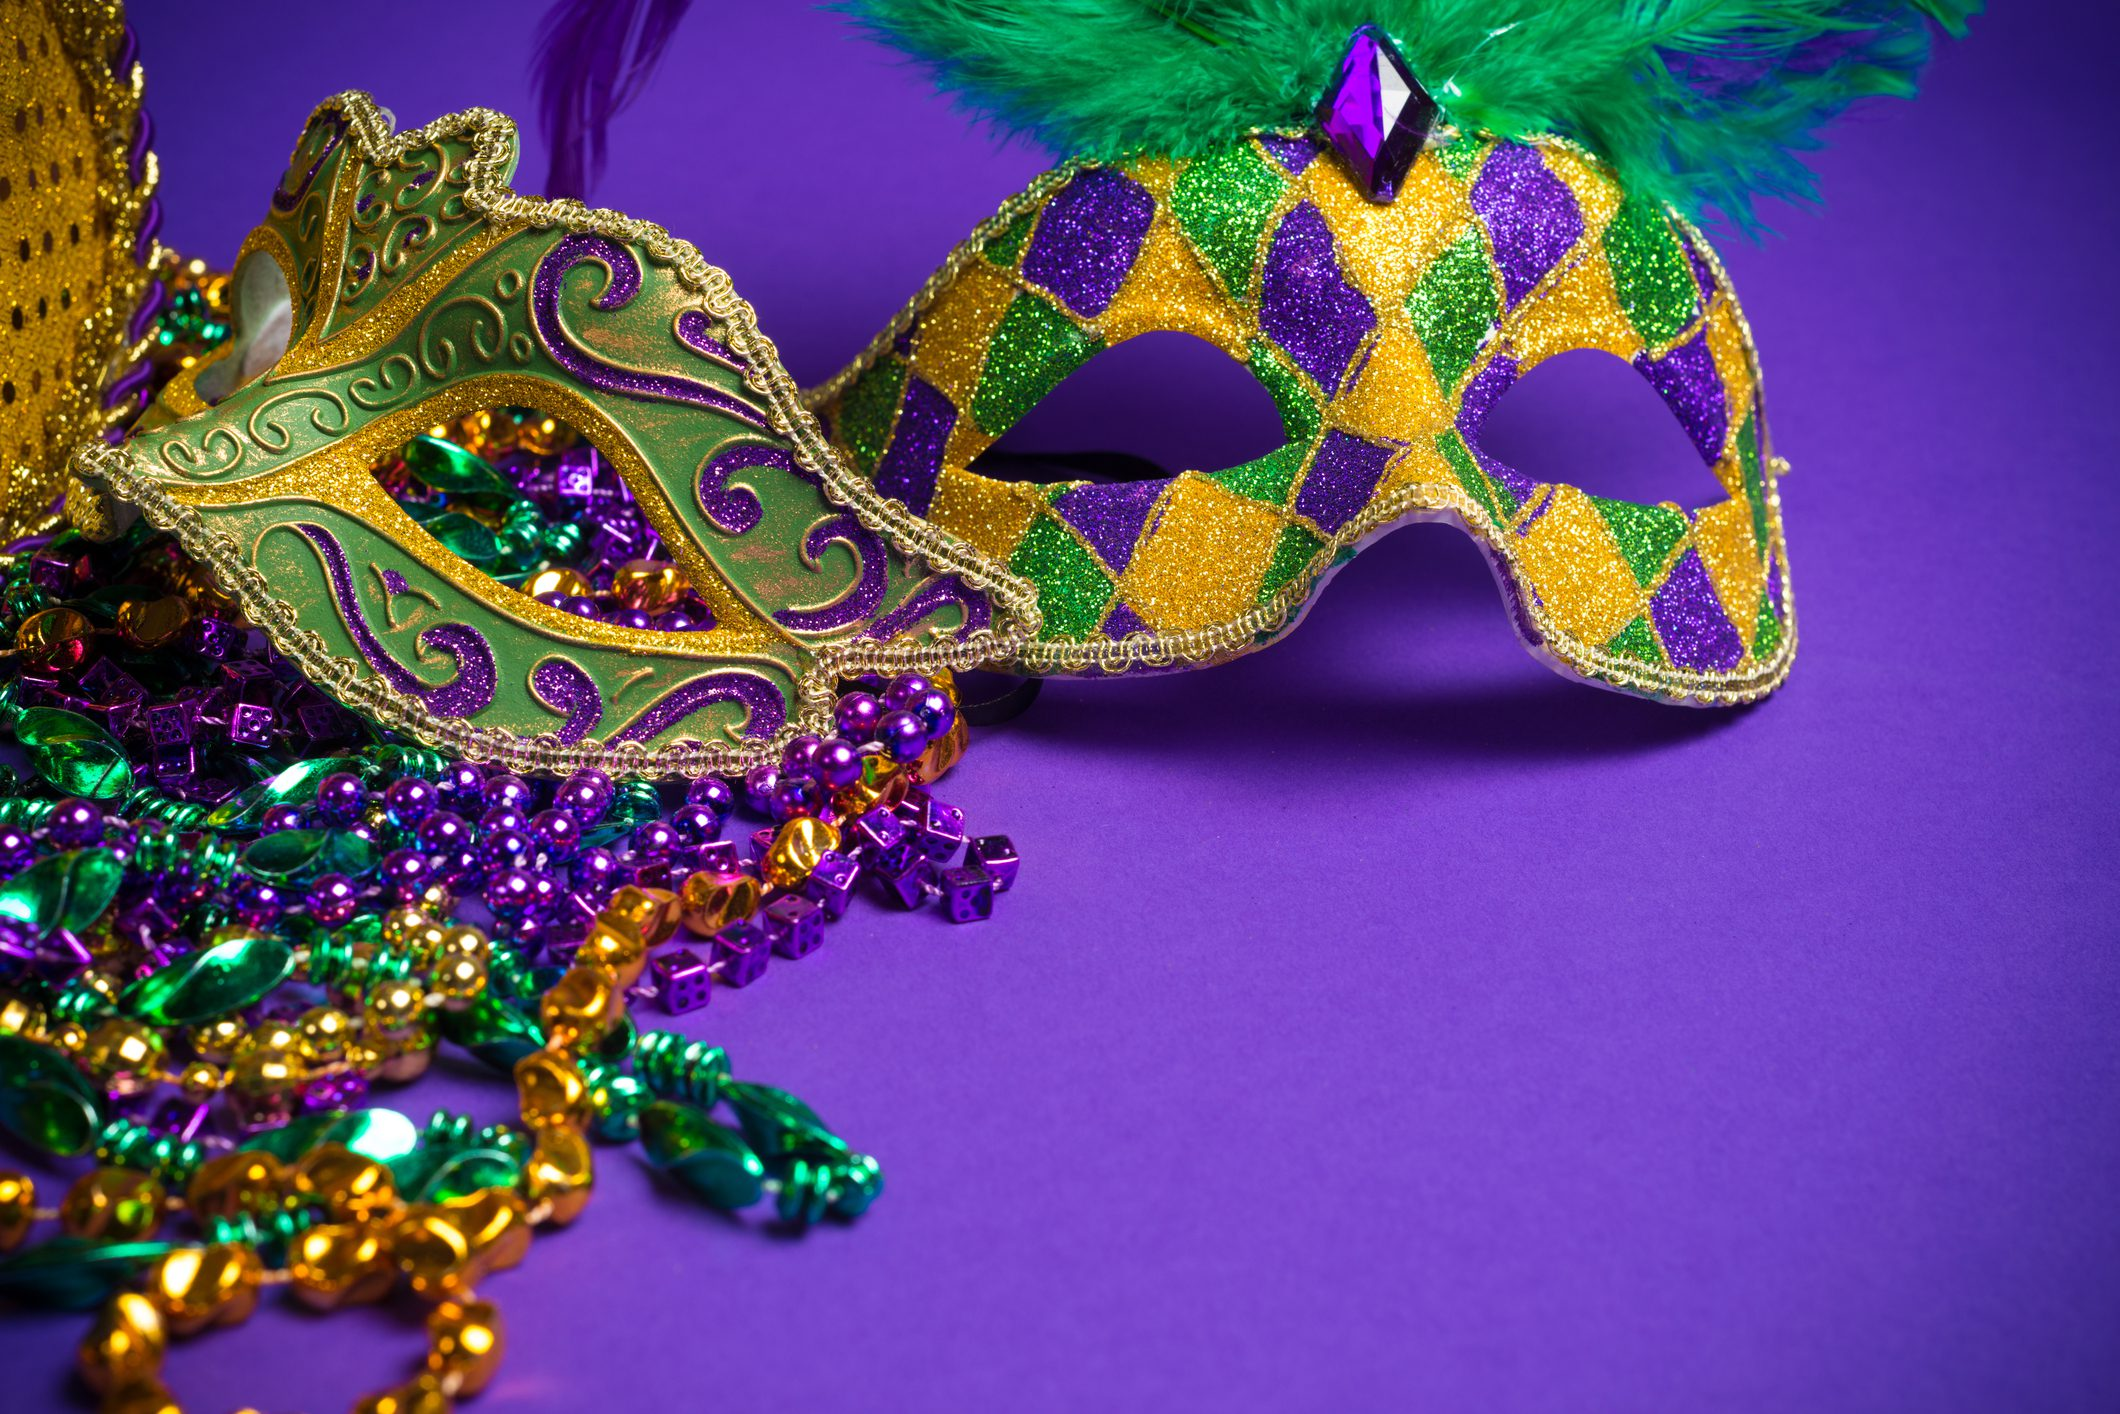 february 24 25th mardi gras pub crawl 9th annual parade bel aire terrace. Black Bedroom Furniture Sets. Home Design Ideas